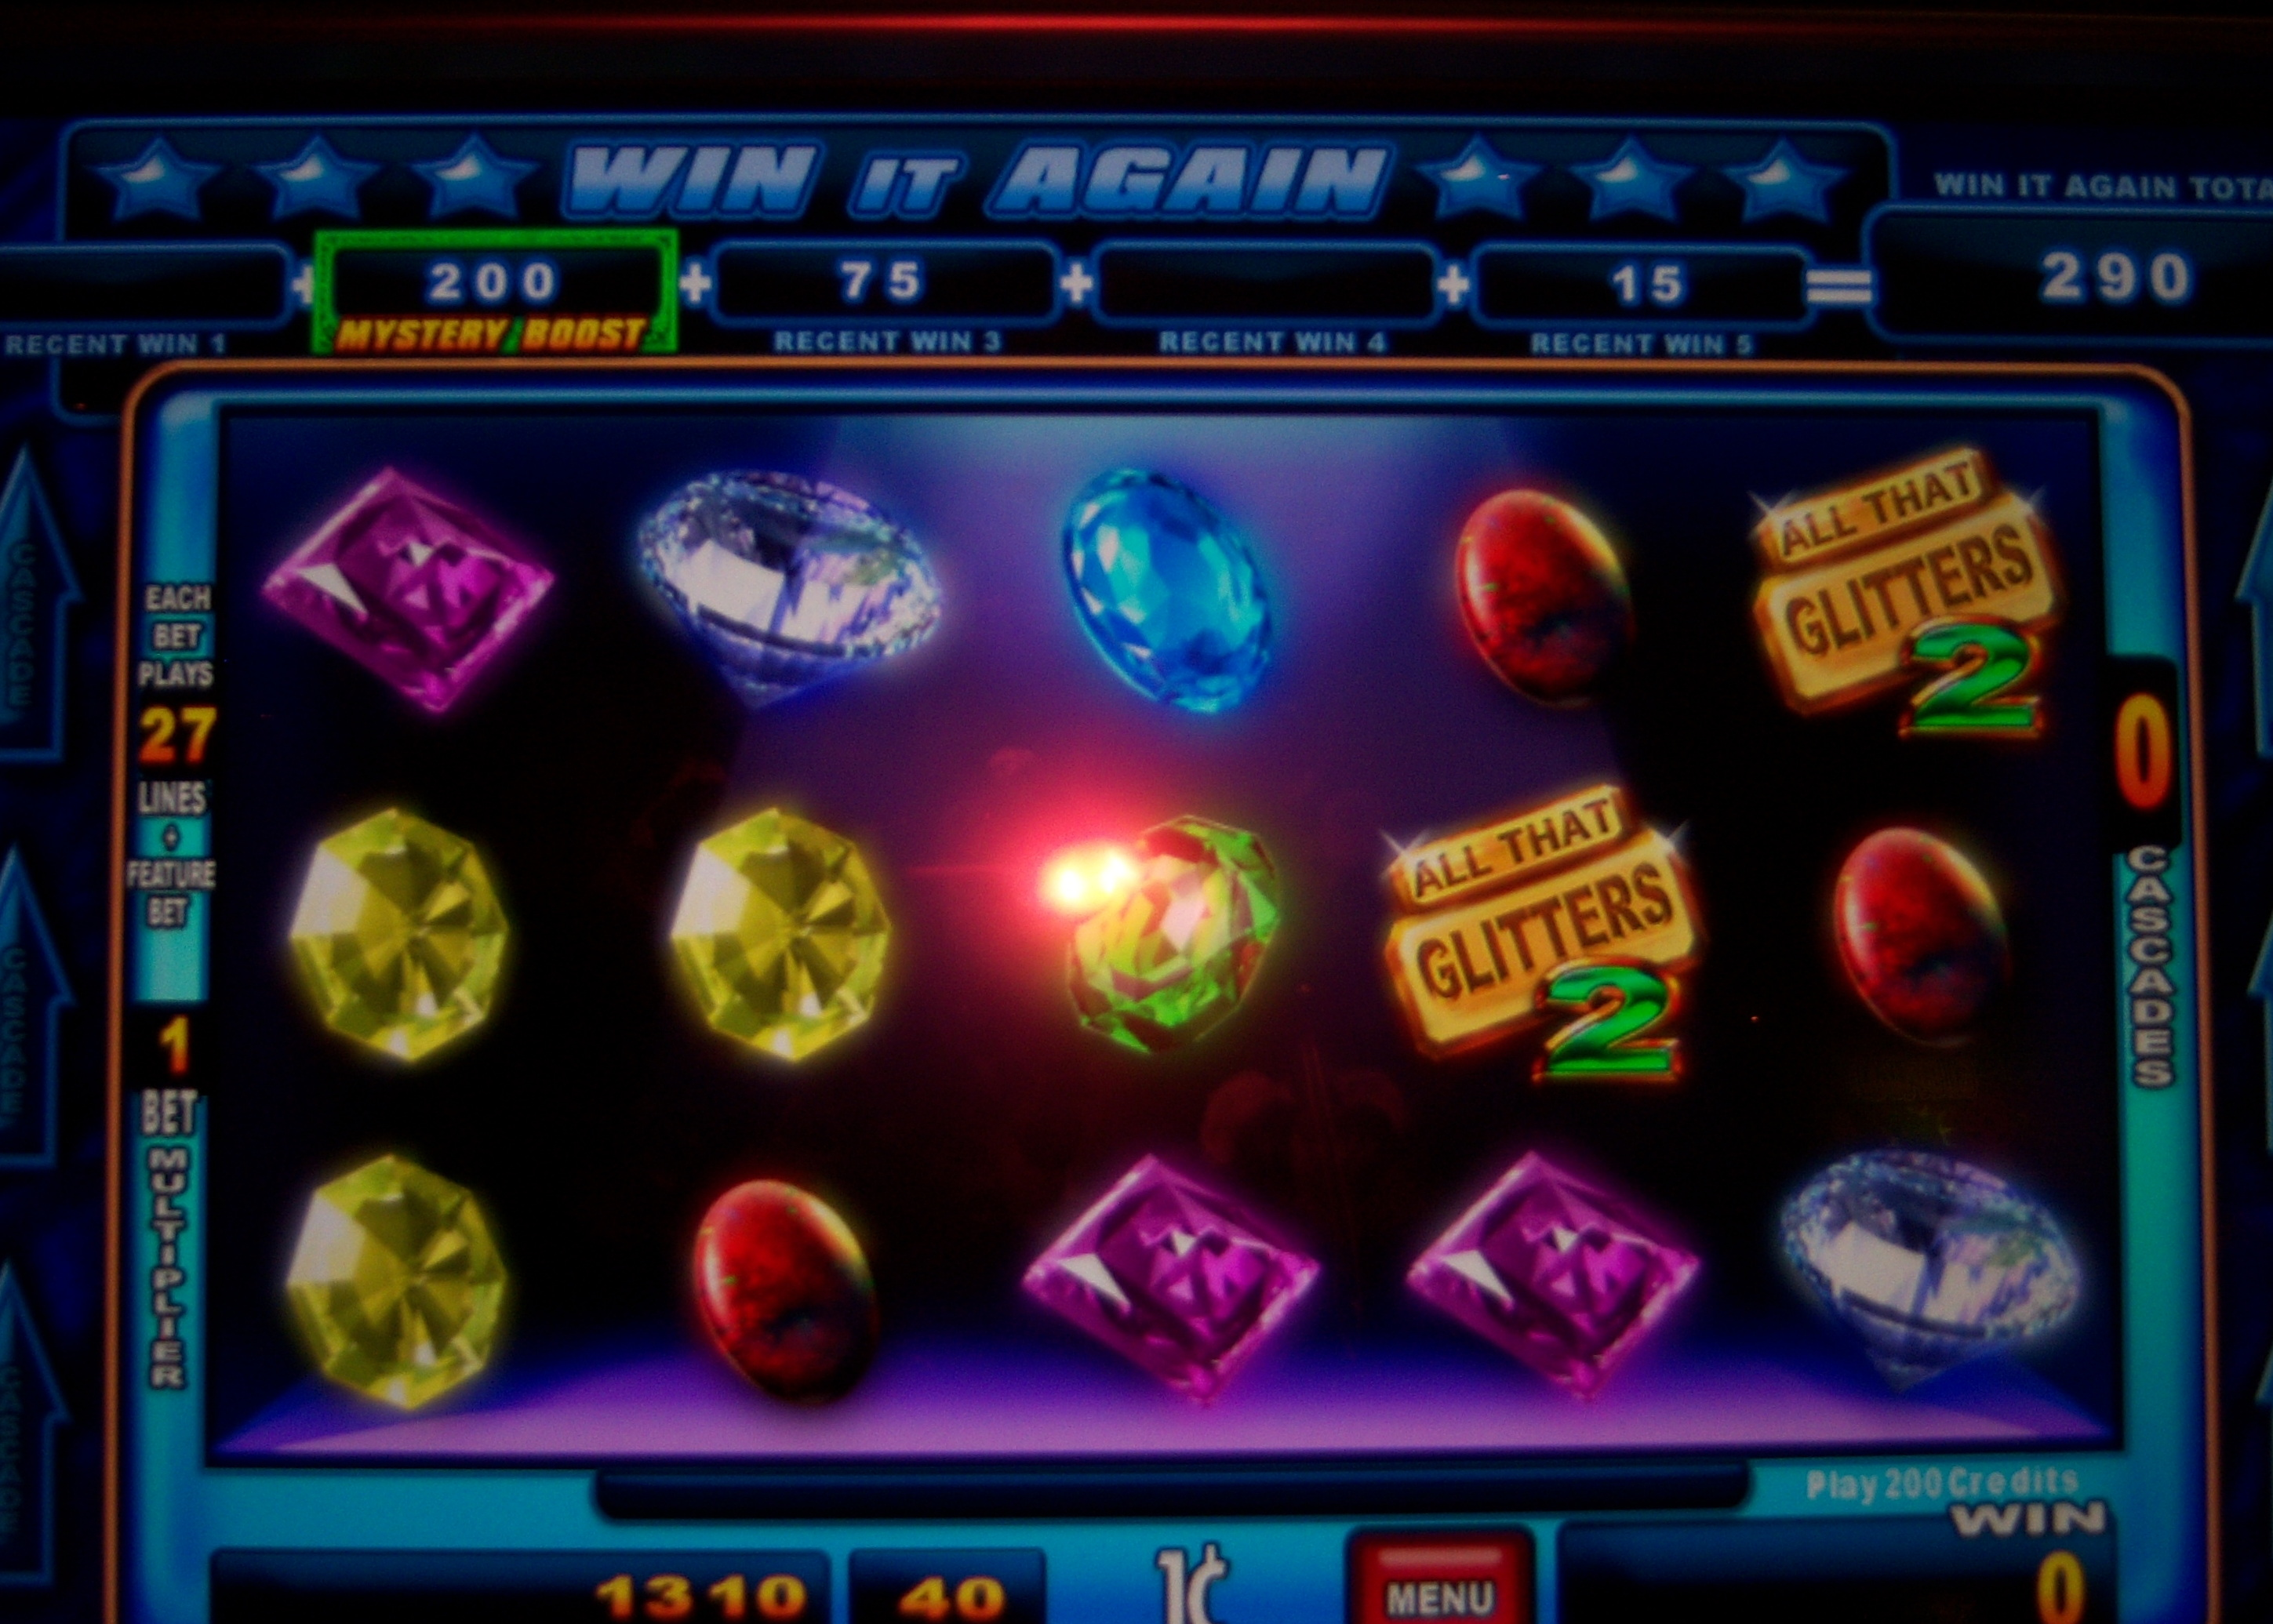 Play all that glitters slot game